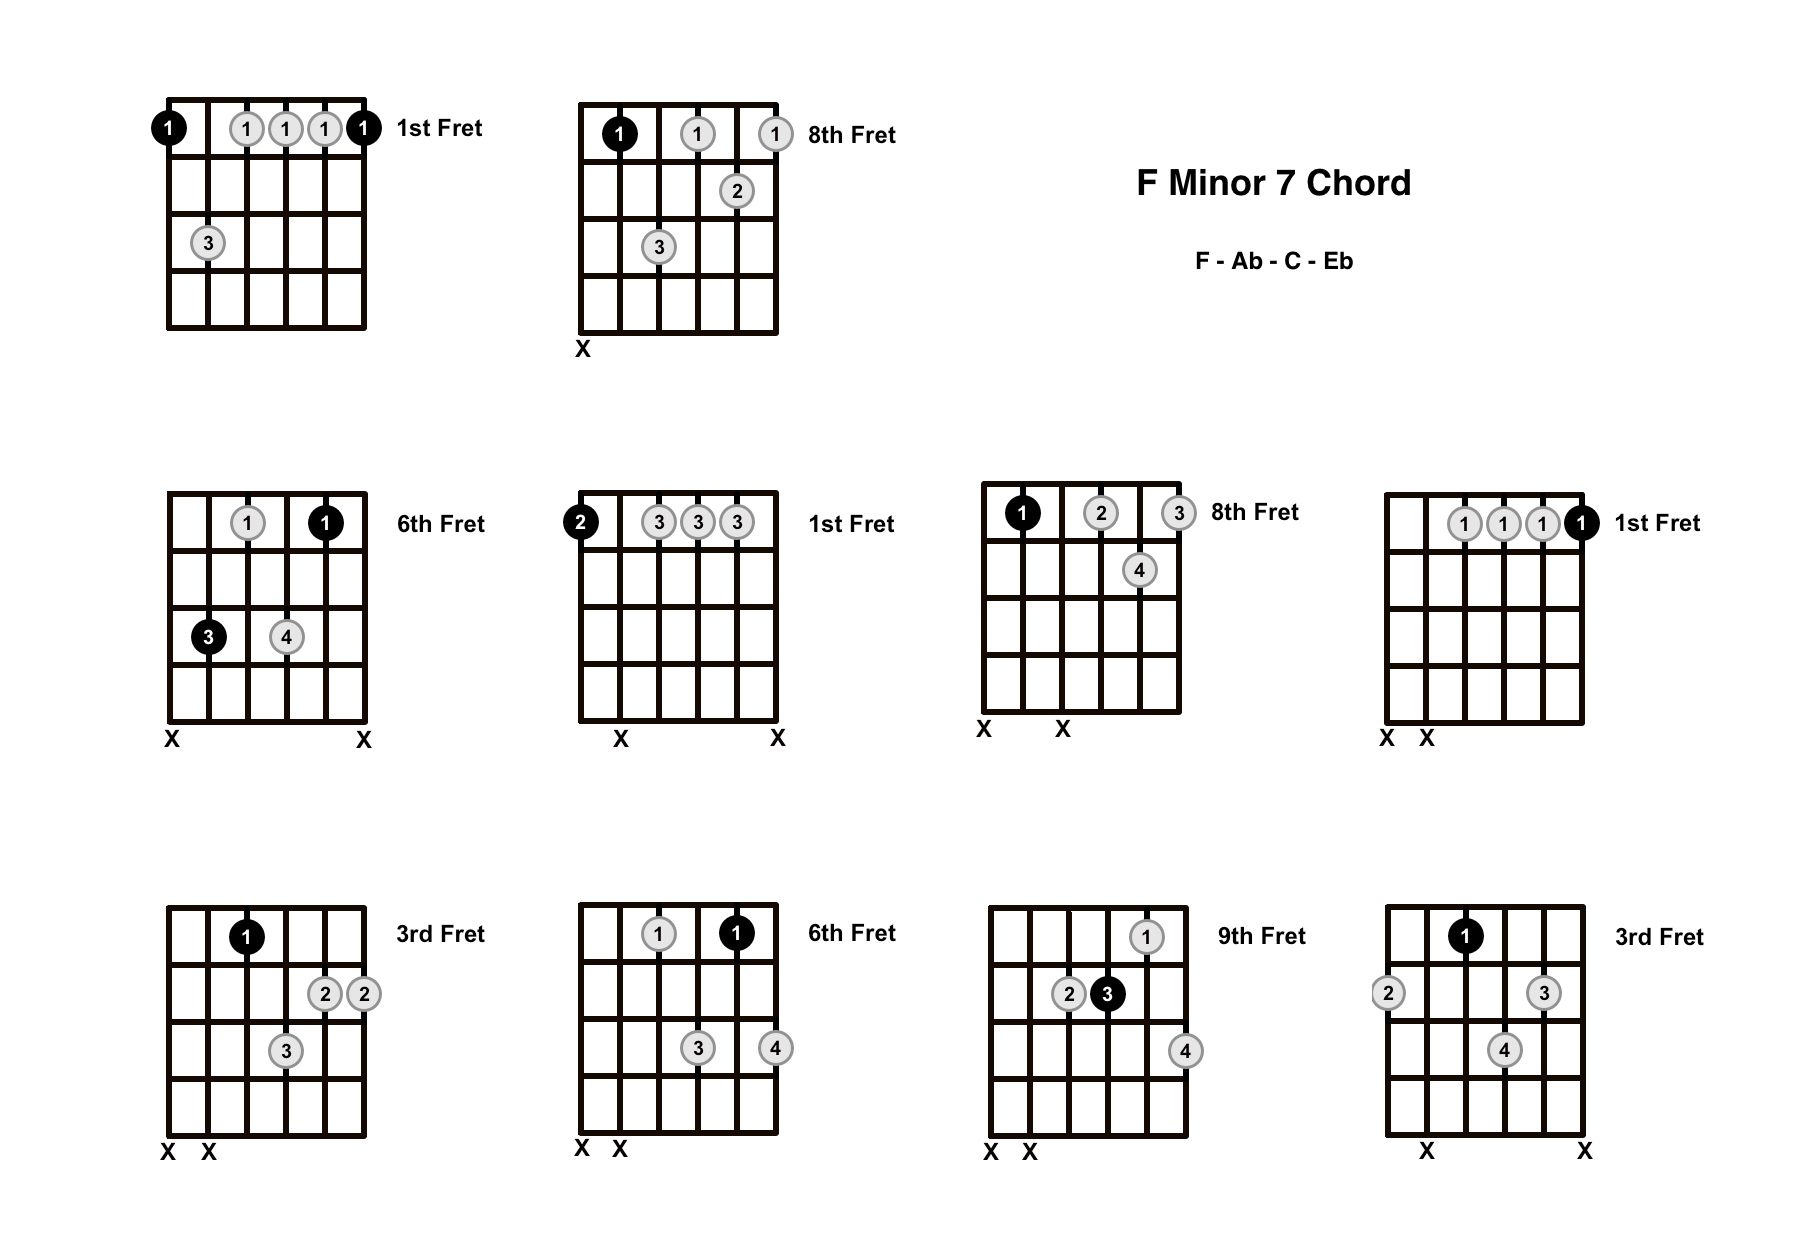 Fm7 Chord on the Guitar (F Minor 7) – Diagrams, Finger Positions, Theory